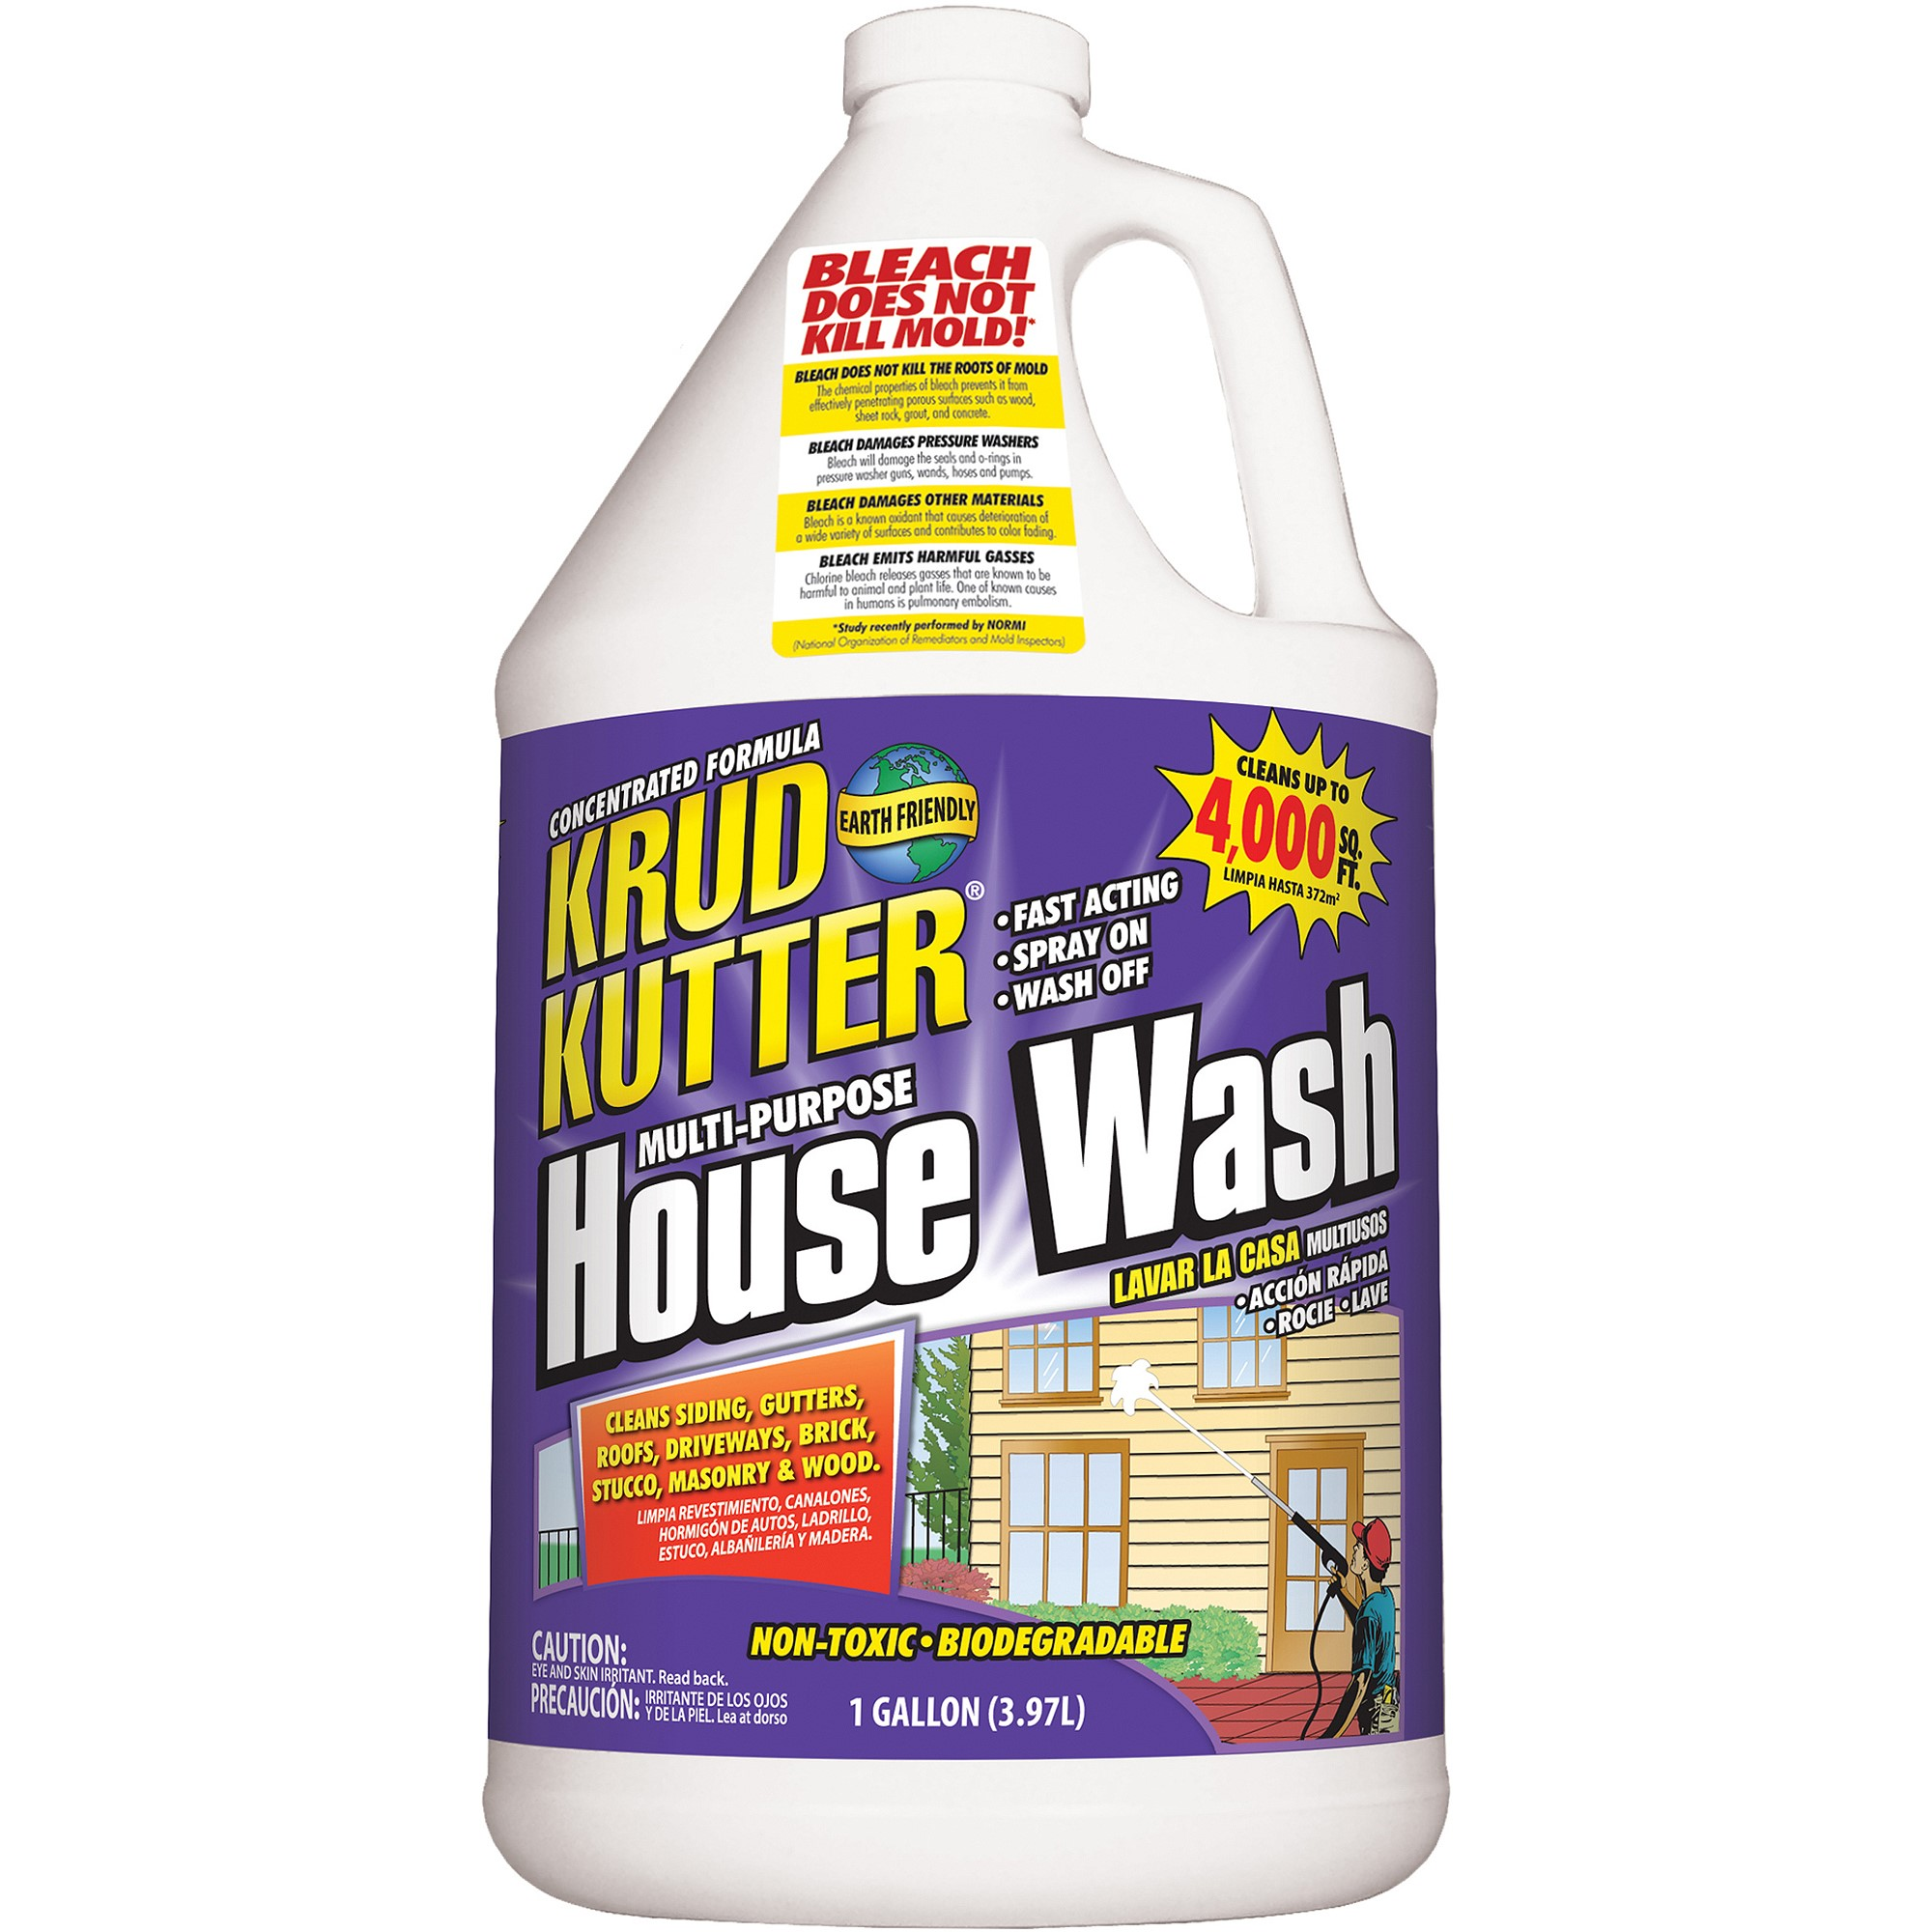 Krud Kutter Multi Purpose House Wash Cleaner, 1 Gal